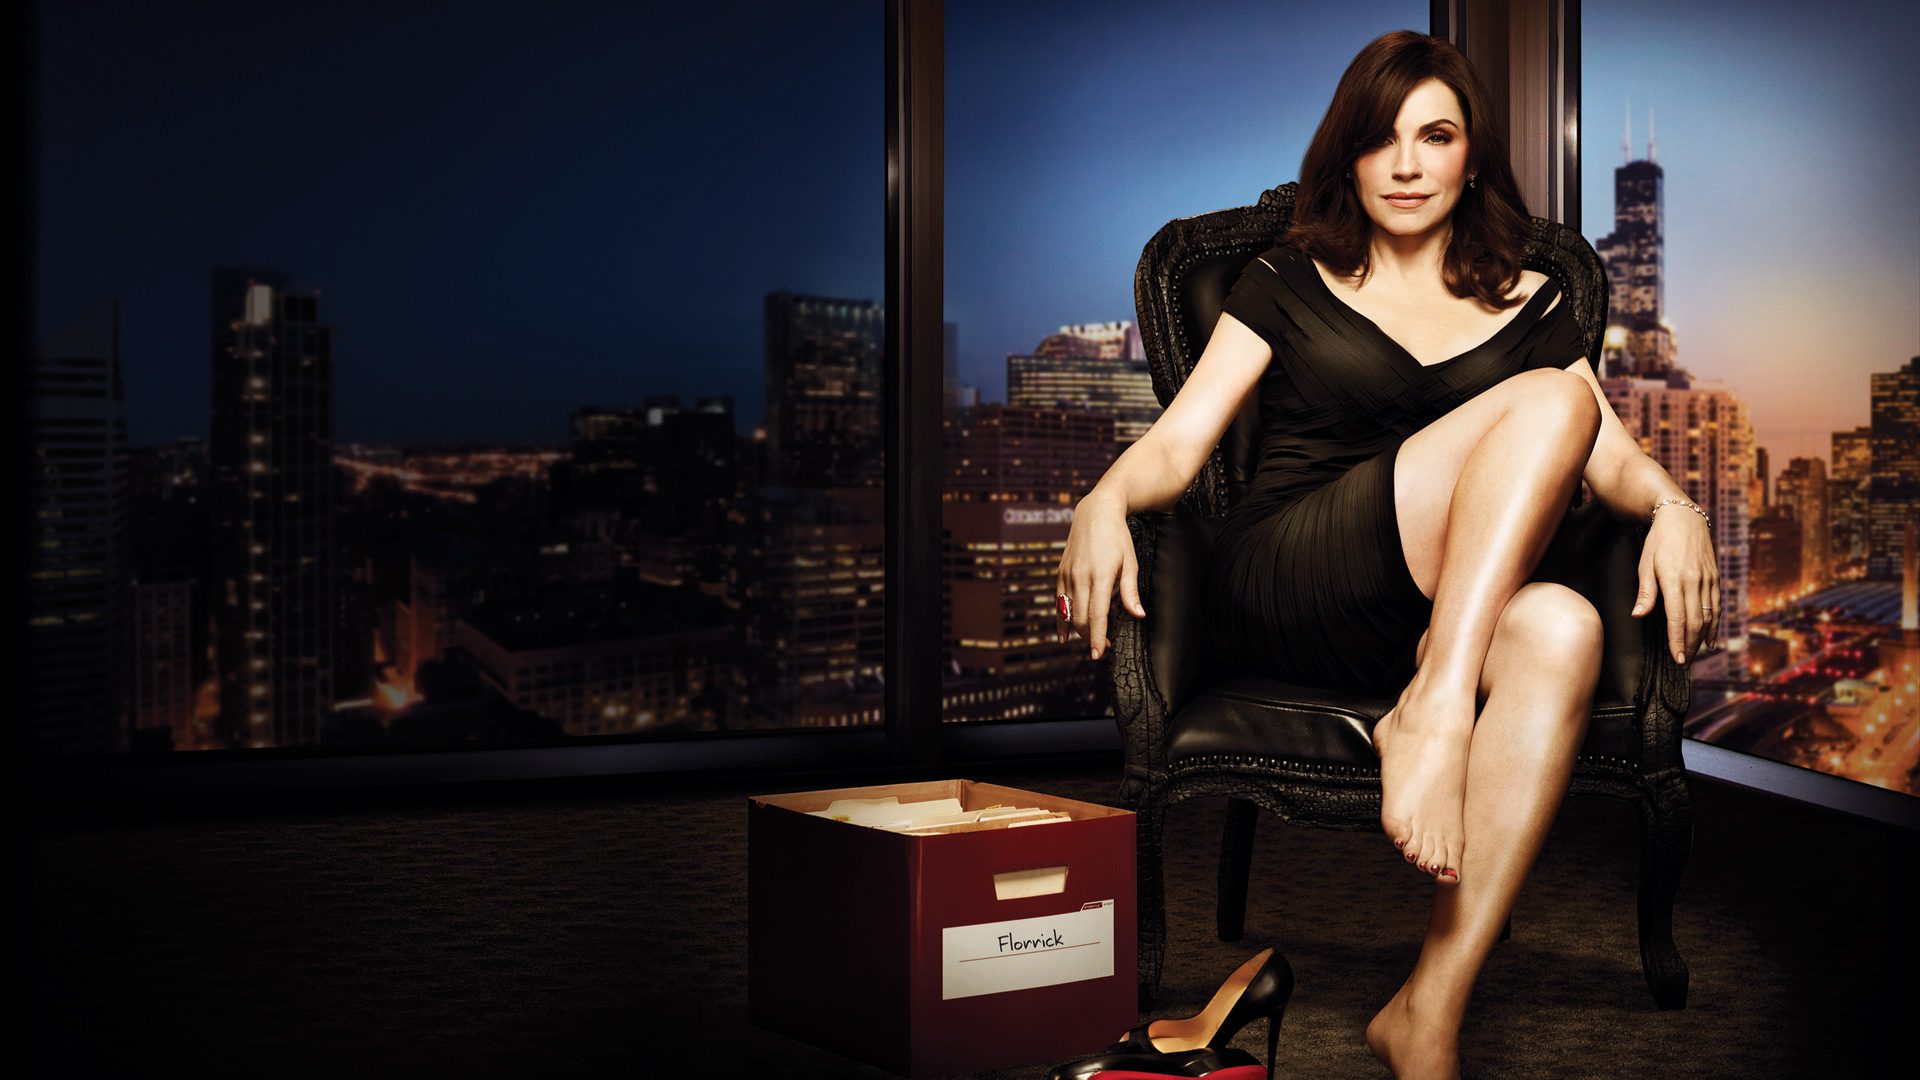 13 The Good Wife HD Wallpapers | Backgrounds - Wallpaper Abyss